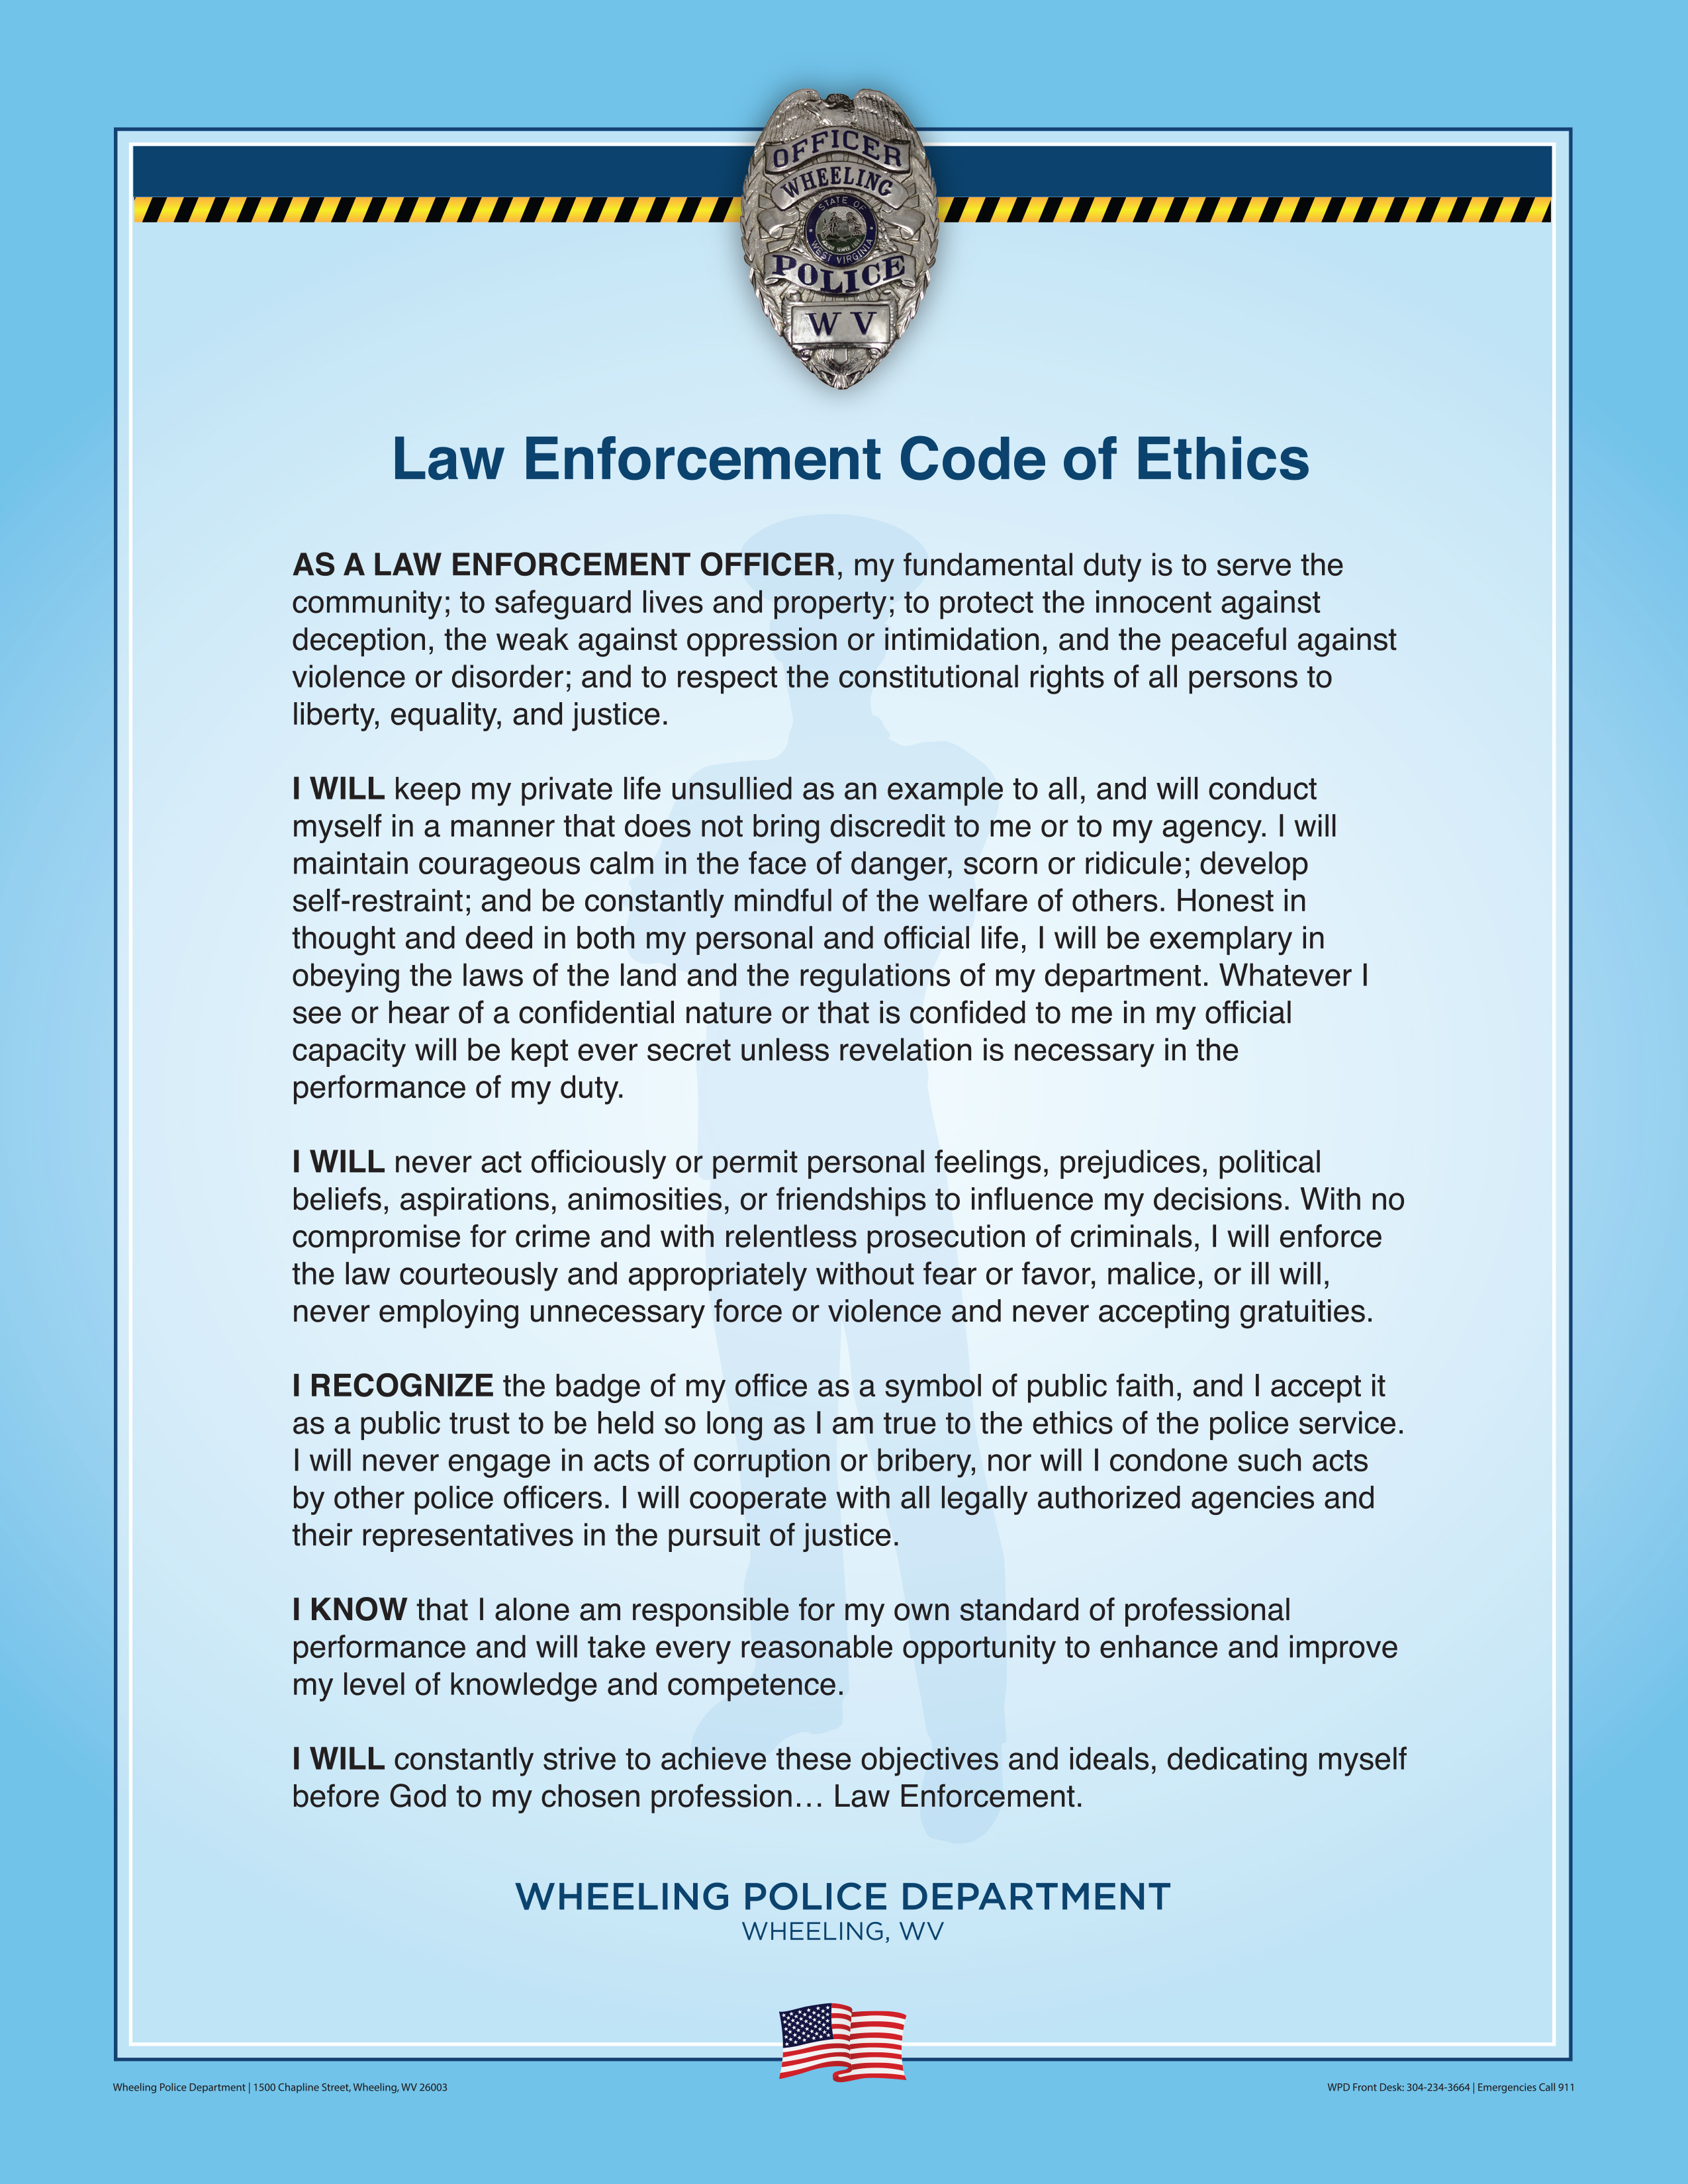 WPD_CodeOfEthics_8.5x11_Poster.jpg